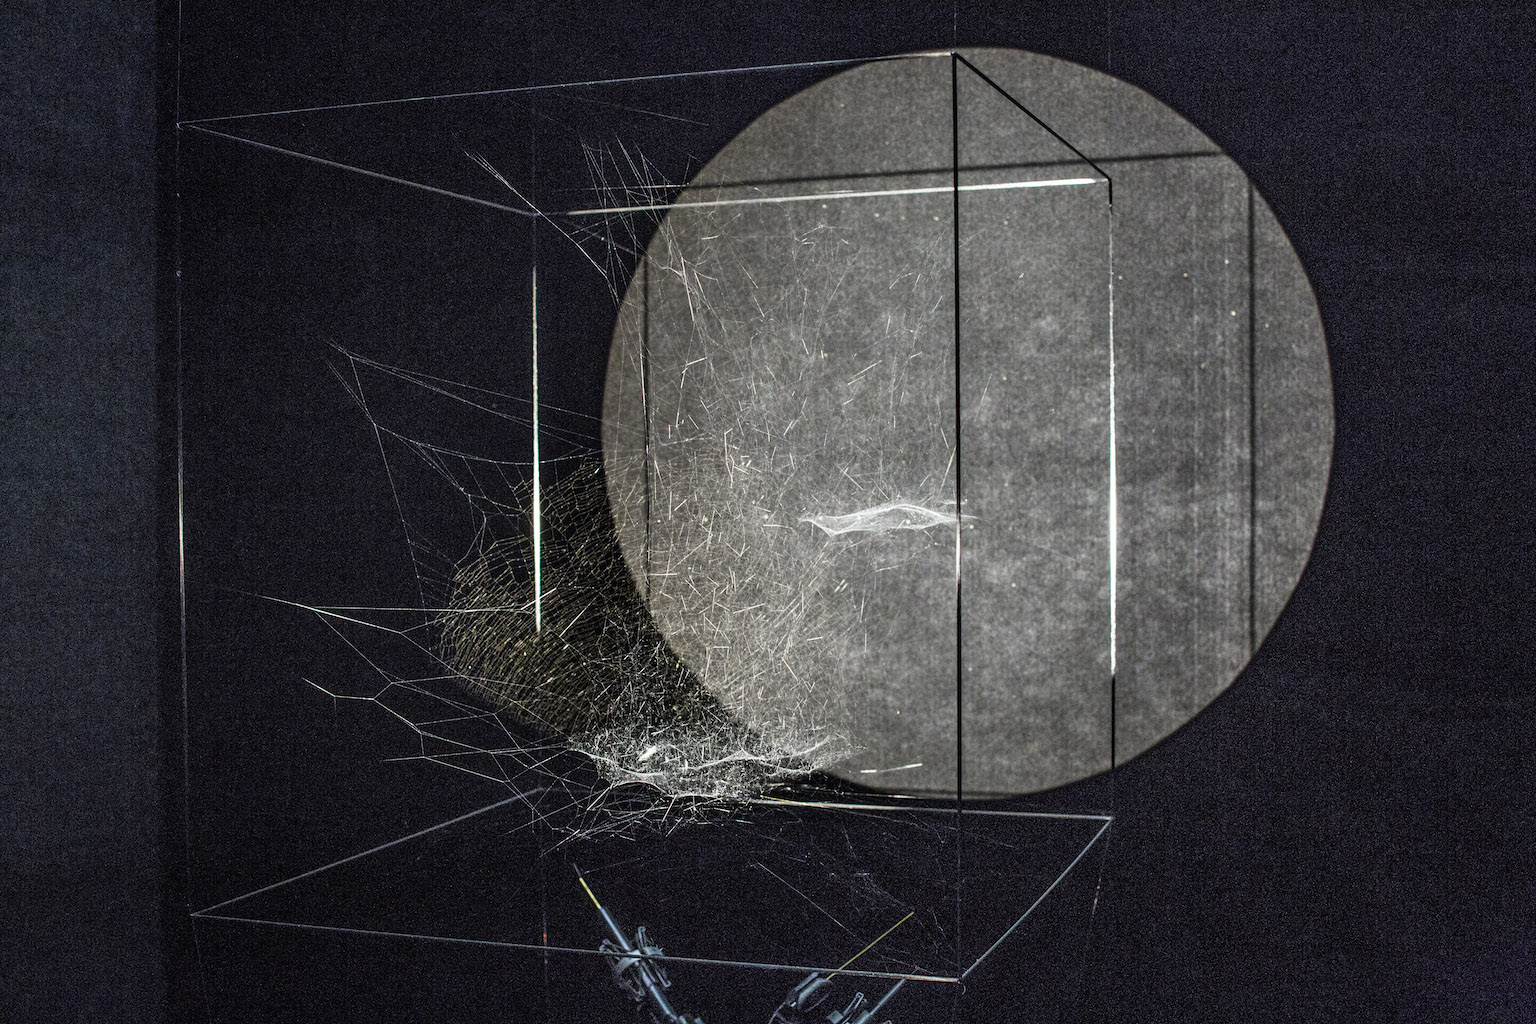 Tomás Saraceno Sonic Cosmic Webs Spider silk, cosmic dust, stellar wind, and projection 2016